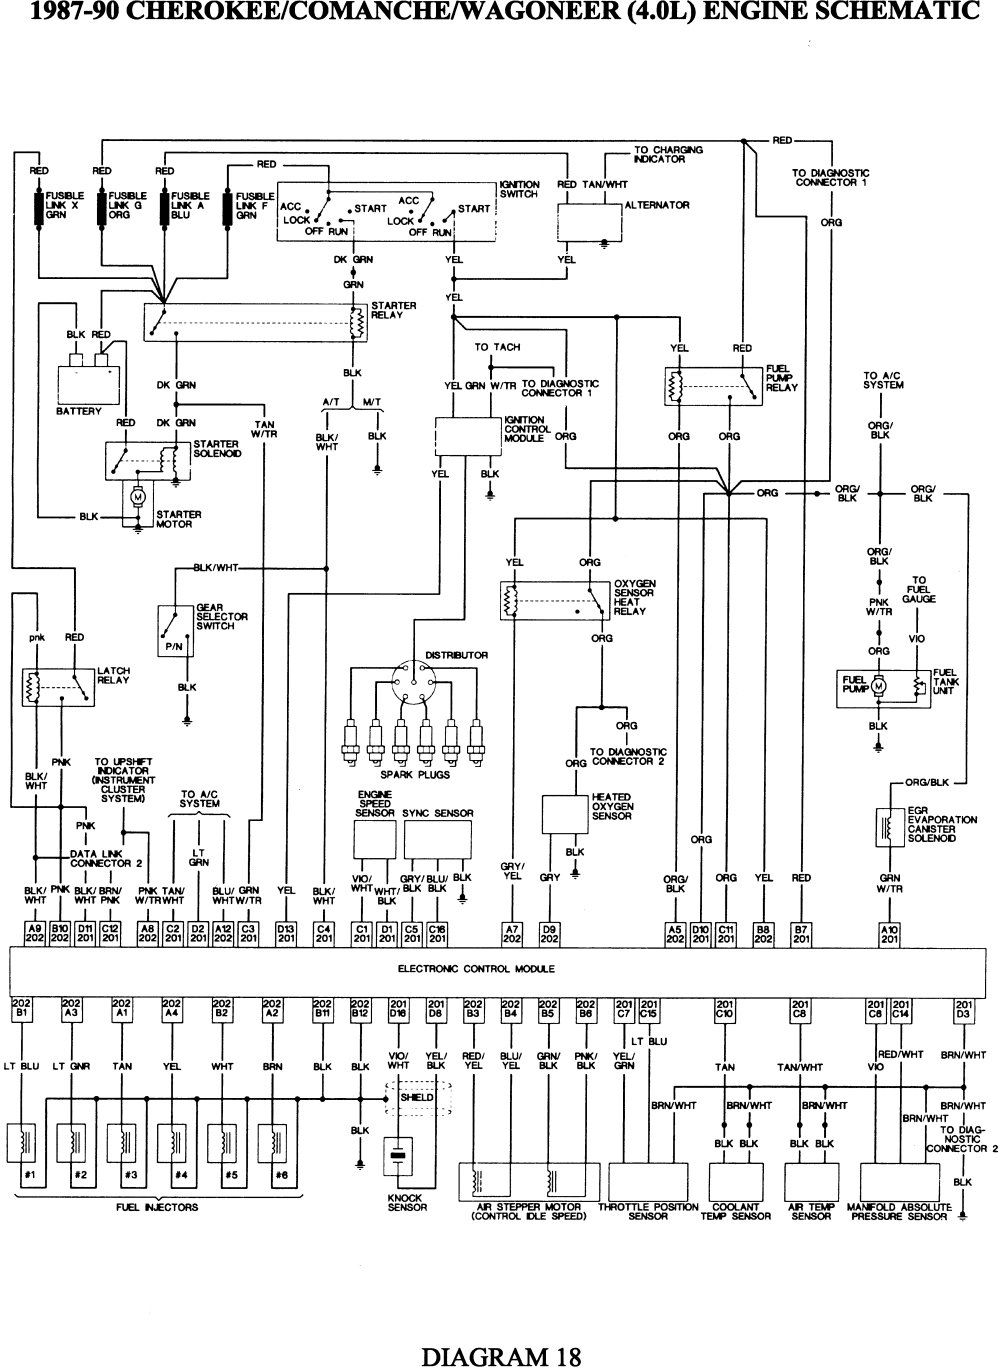 hight resolution of jeep transmission wiring diagram in 97 wrangler wiring diagramjeep transmission wiring diagram in 97 wrangler wiring